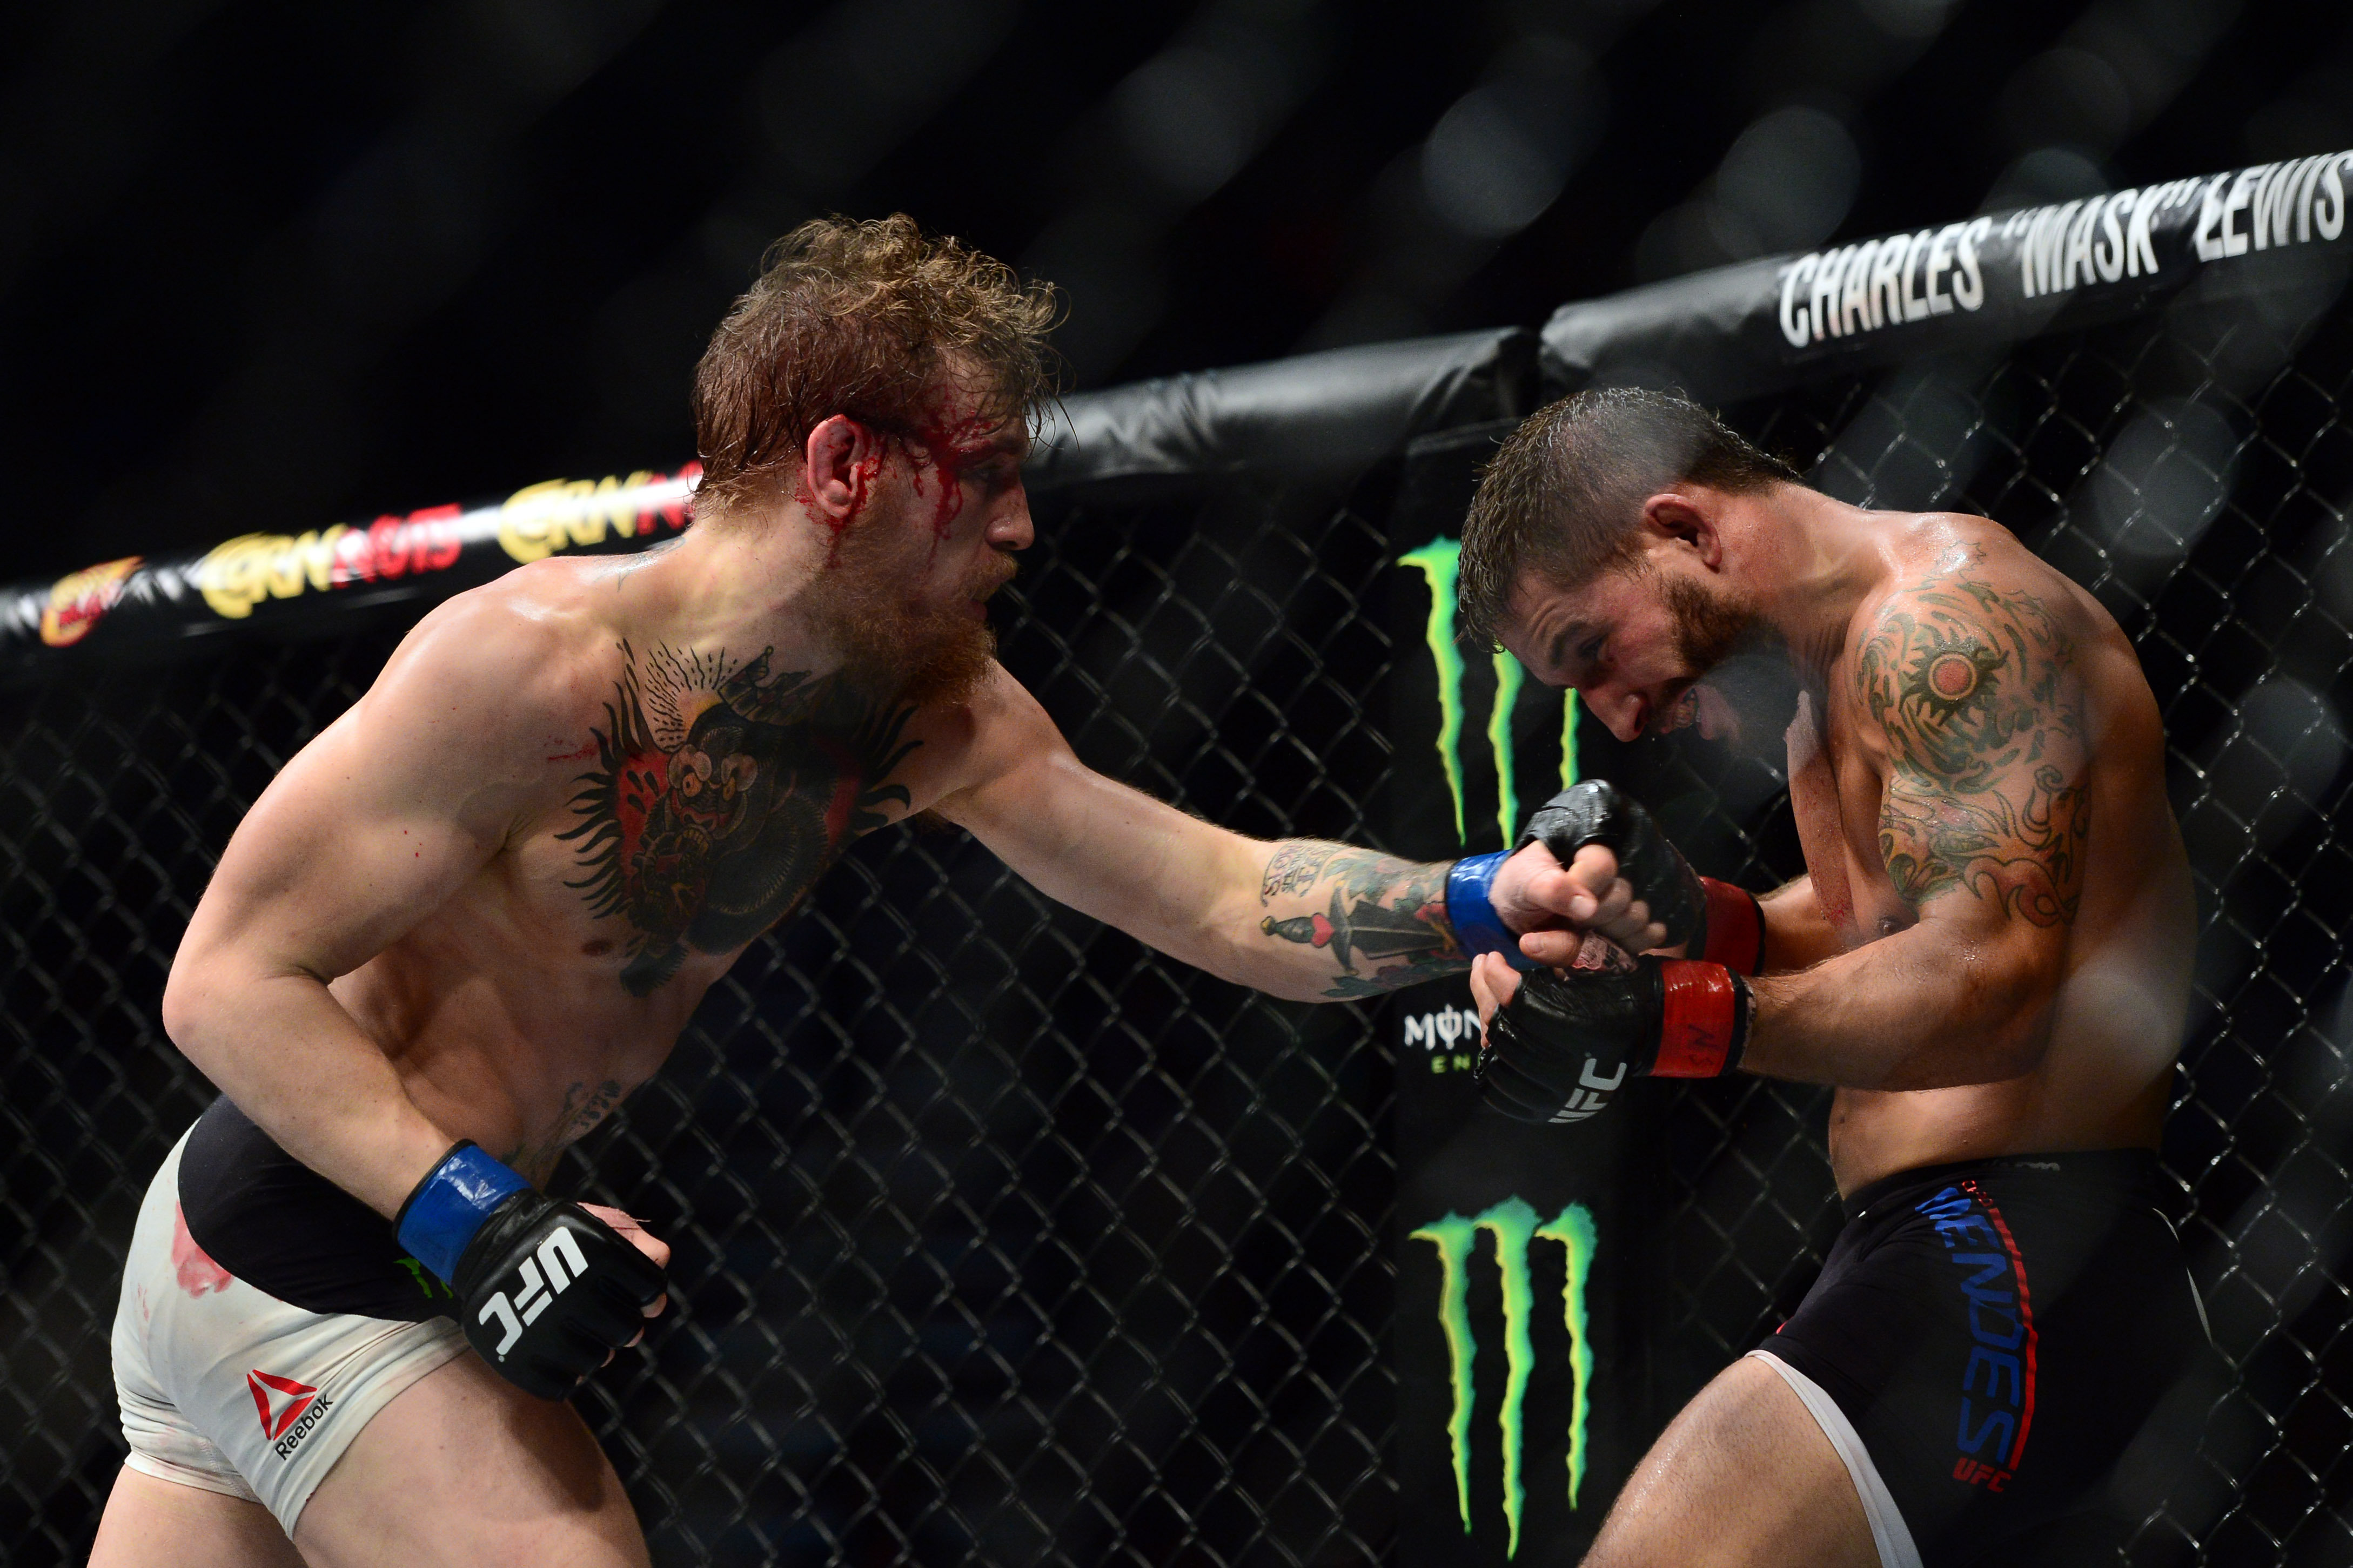 UFC 189 results: Full fight card winners and reaction from McGregor vs. Mendes